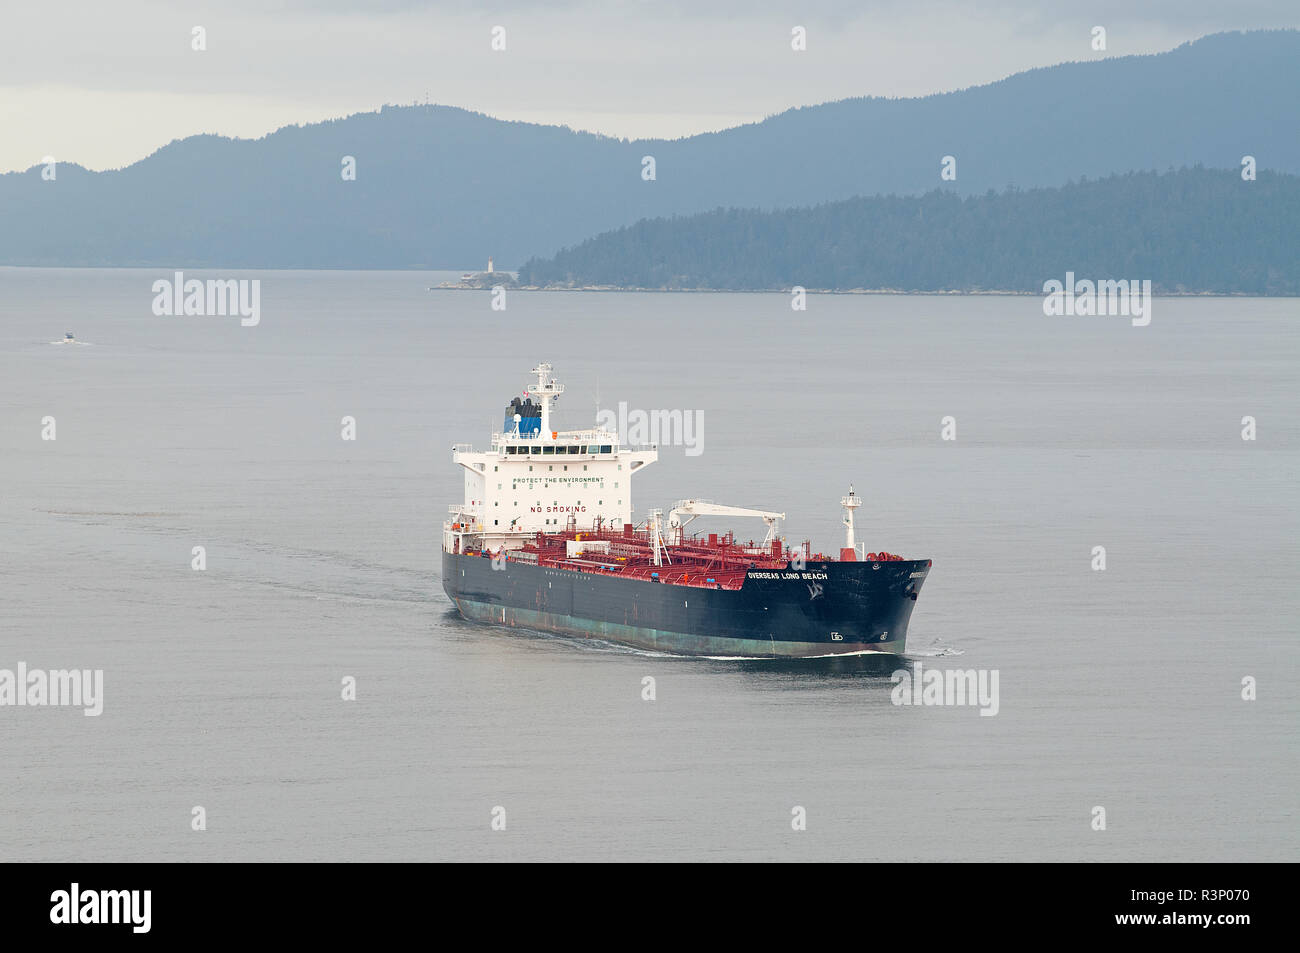 The USA registered oil/chemical tanker passes Prospect point as it slowly makes its way into Vancouver in British Columbia Canada. - Stock Image